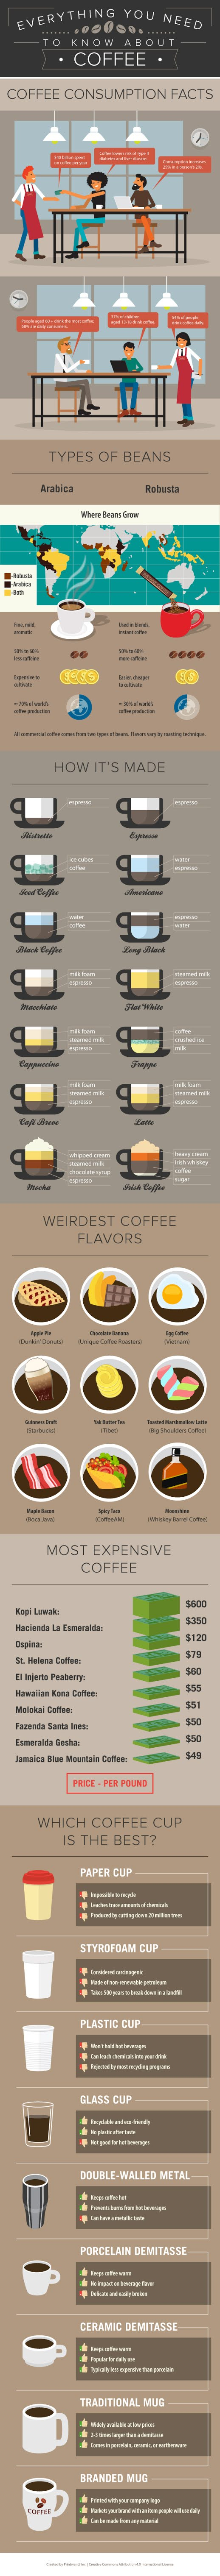 Everything You Need To Know About Coffee #infographic #Coffee #infographics #About Coffee